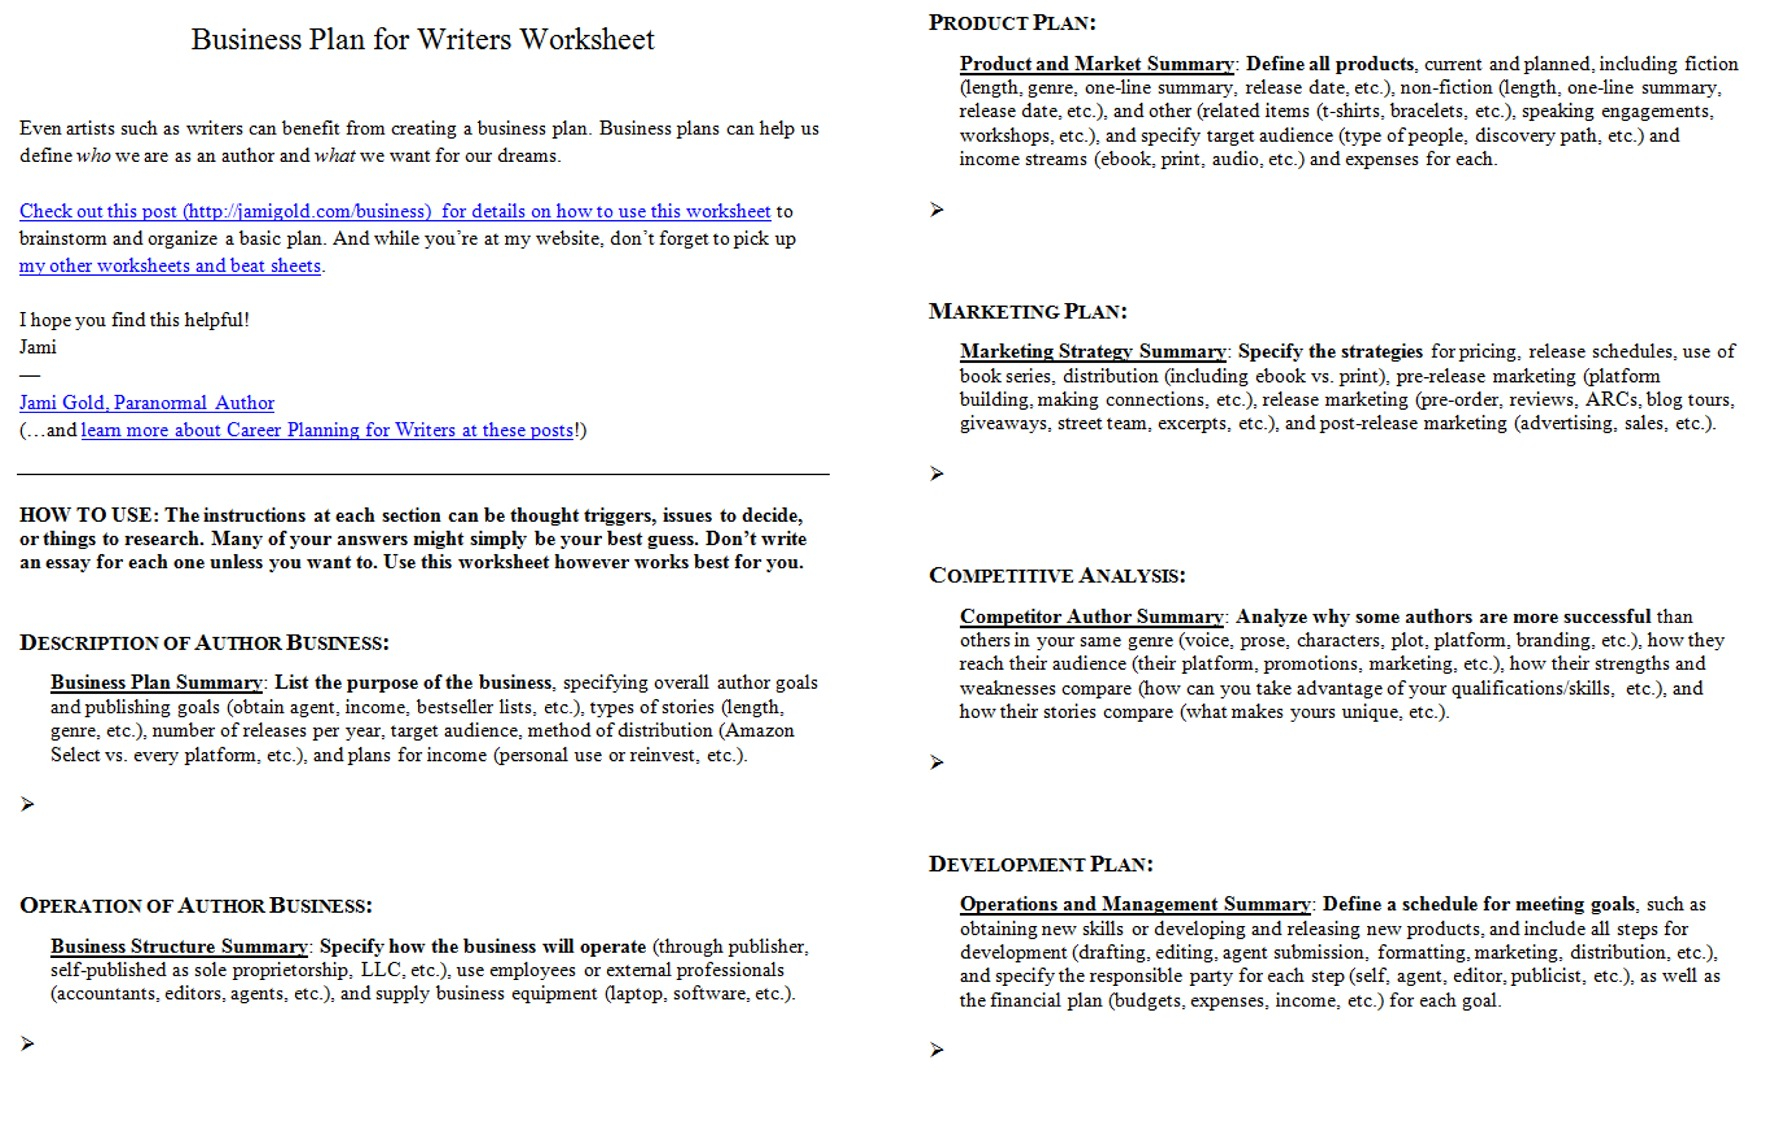 Aldiablosus  Ravishing Worksheets For Writers  Jami Gold Paranormal Author With Engaging Screen Shot Of Both Pages Of The Business Plan For Writers Worksheet With Awesome Grade R Worksheets Also Reading Comprehension Free Printable Worksheets In Addition Worksheets For Kids Printable And Free Printable Worksheets On Pronouns As Well As Worksheet Addition And Subtraction Additionally Learning The Calendar Worksheets From Jamigoldcom With Aldiablosus  Engaging Worksheets For Writers  Jami Gold Paranormal Author With Awesome Screen Shot Of Both Pages Of The Business Plan For Writers Worksheet And Ravishing Grade R Worksheets Also Reading Comprehension Free Printable Worksheets In Addition Worksheets For Kids Printable From Jamigoldcom